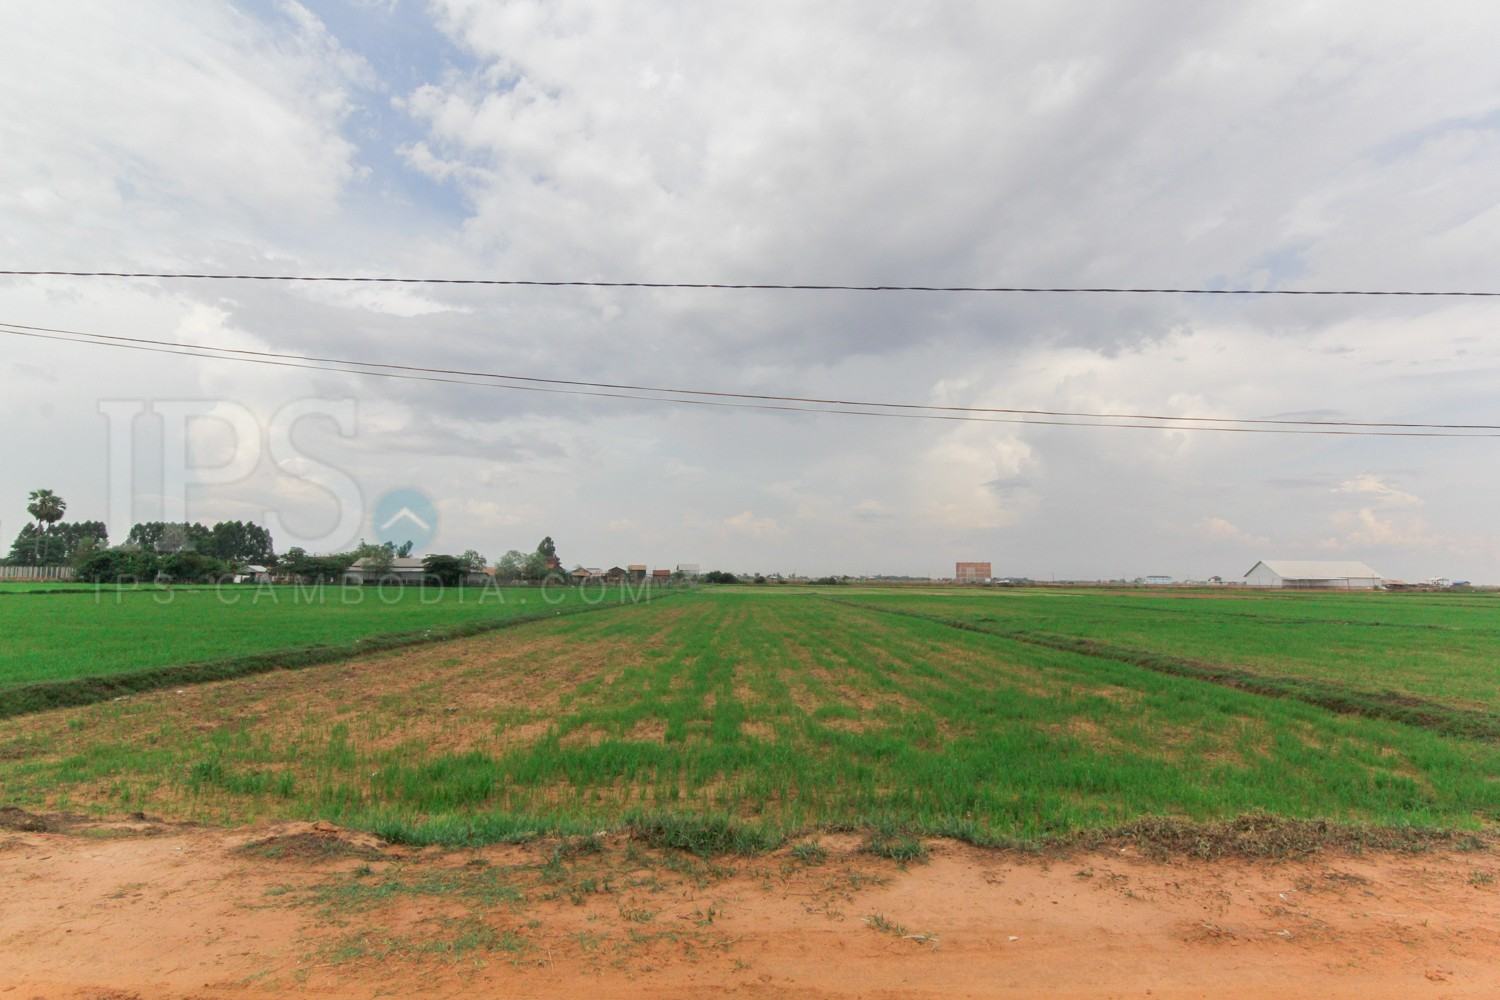 Low price for quick sale - 1,977 Land For Sale - Chreav, Siem Reap